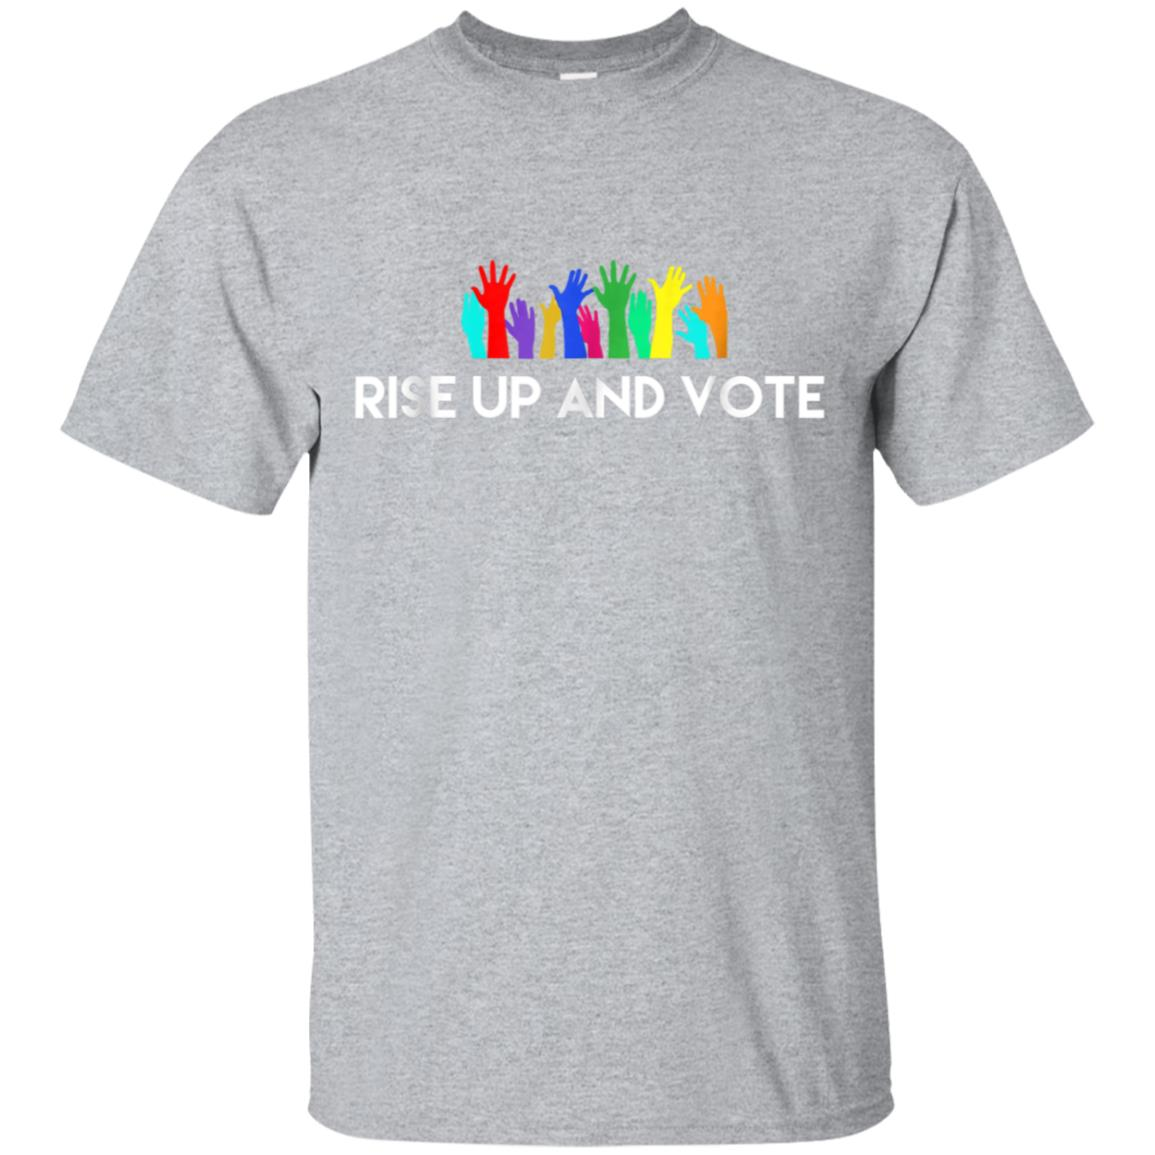 Rise Up and Vote T-shirt 99promocode